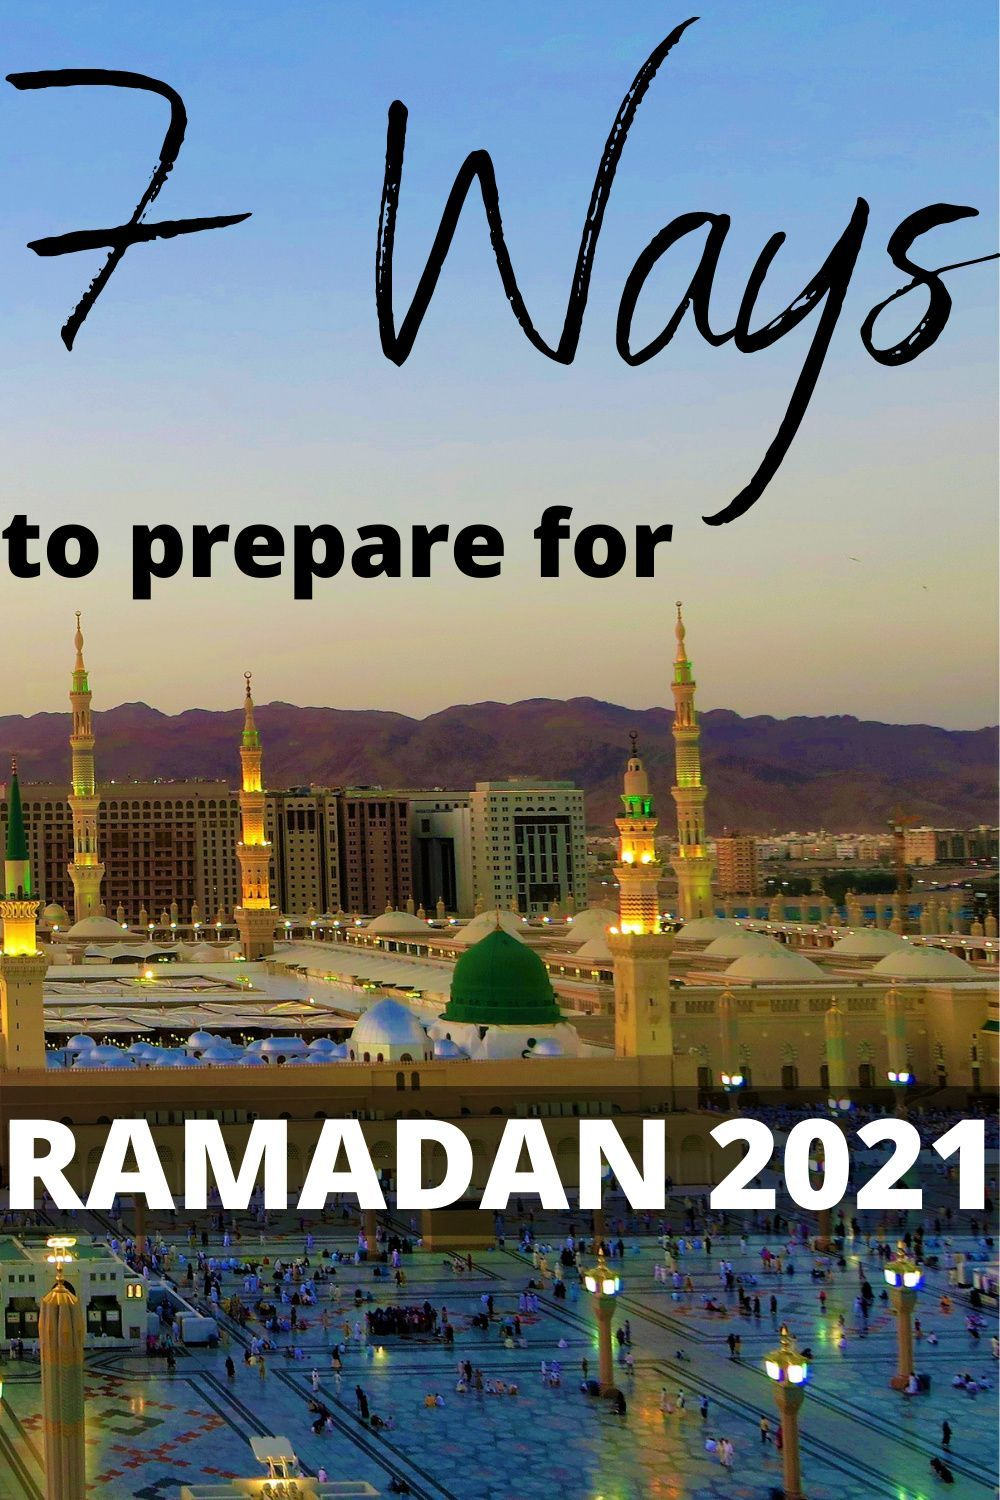 How To Prepare For Ramadan 2021 In 2021 Preparing For Ramadan Ramadan Muslim Charity